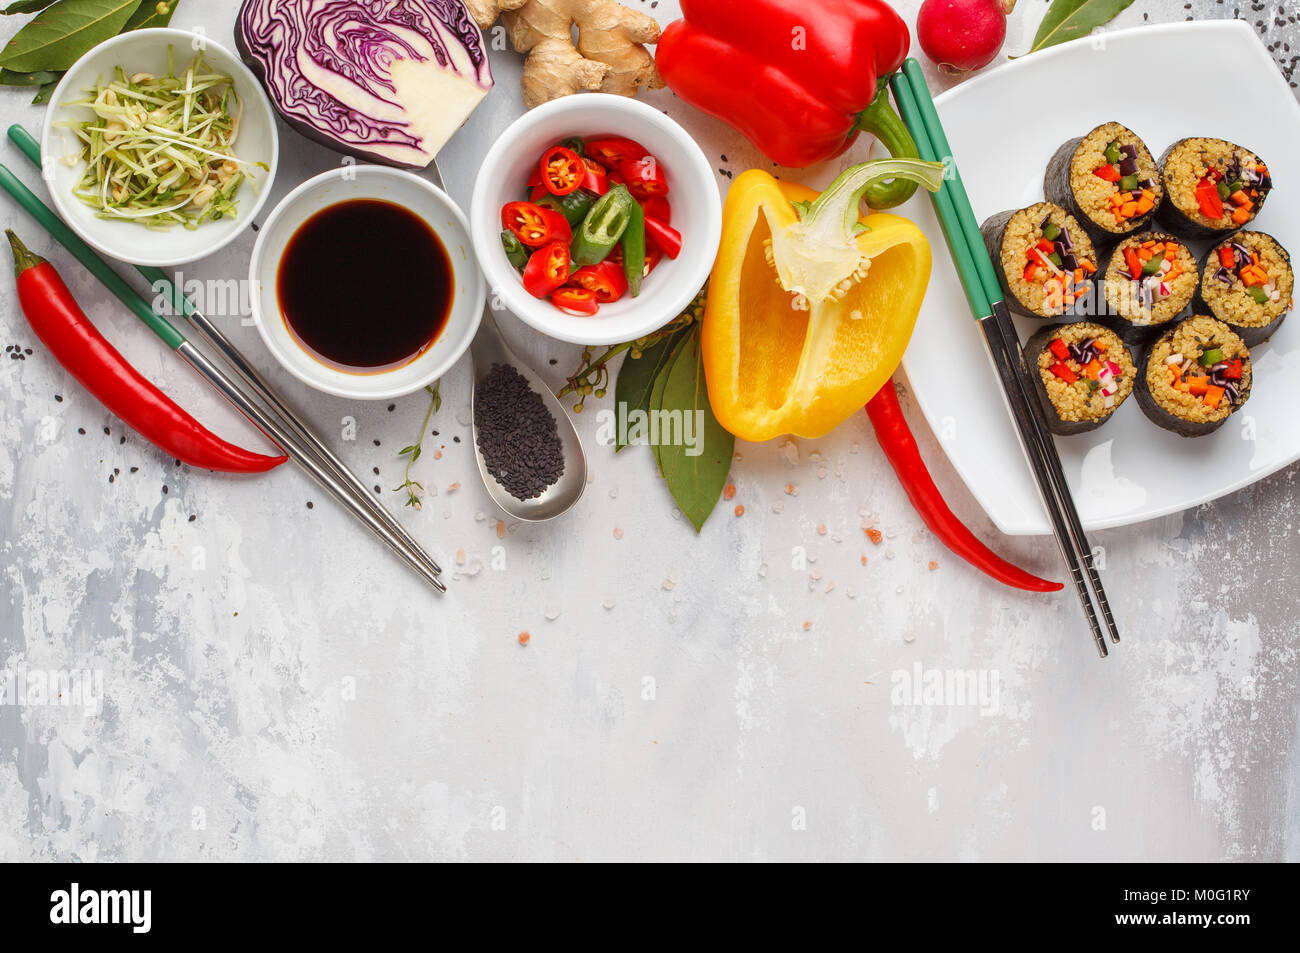 Vegan food background. Sushi rolls with quinoa, vegetables and sprouts. Ingredients for a healthy Vegetarian meal. - Stock Image